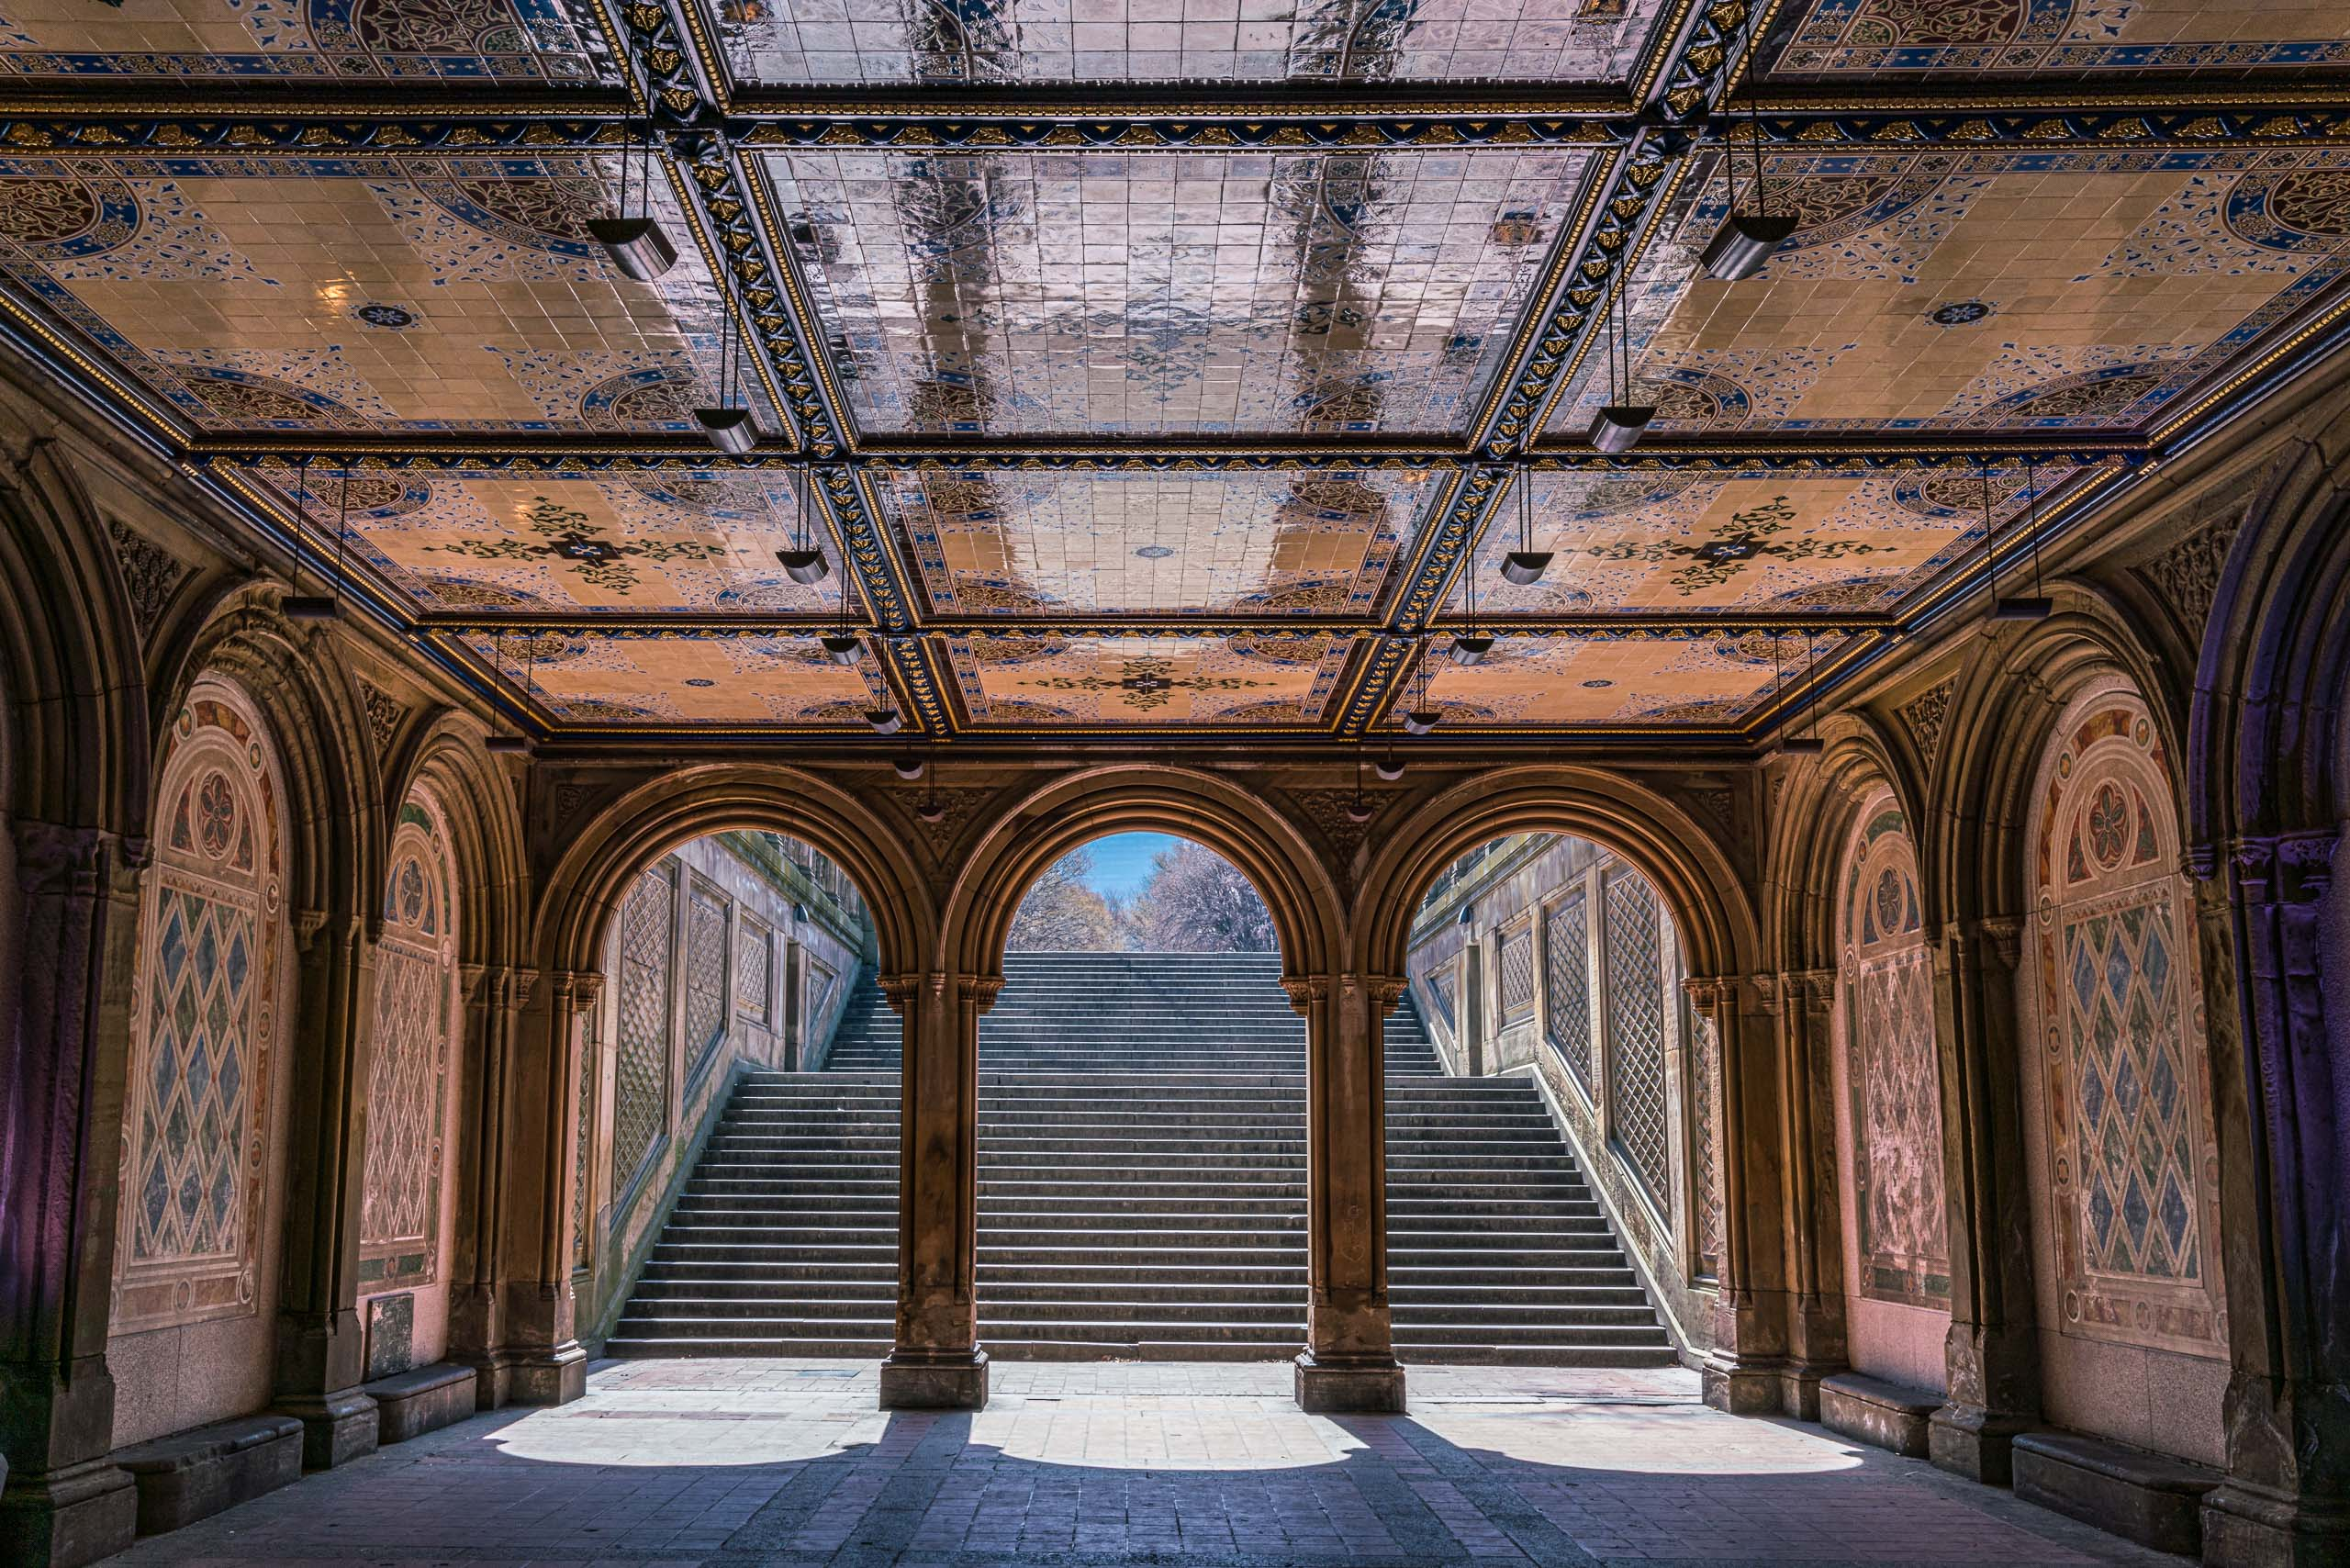 Travel and street photography of New York City, Central Park, Bethesda Terrace and Arcade in USA made by New York photographer Mary Catherine Messner (mcmessner).